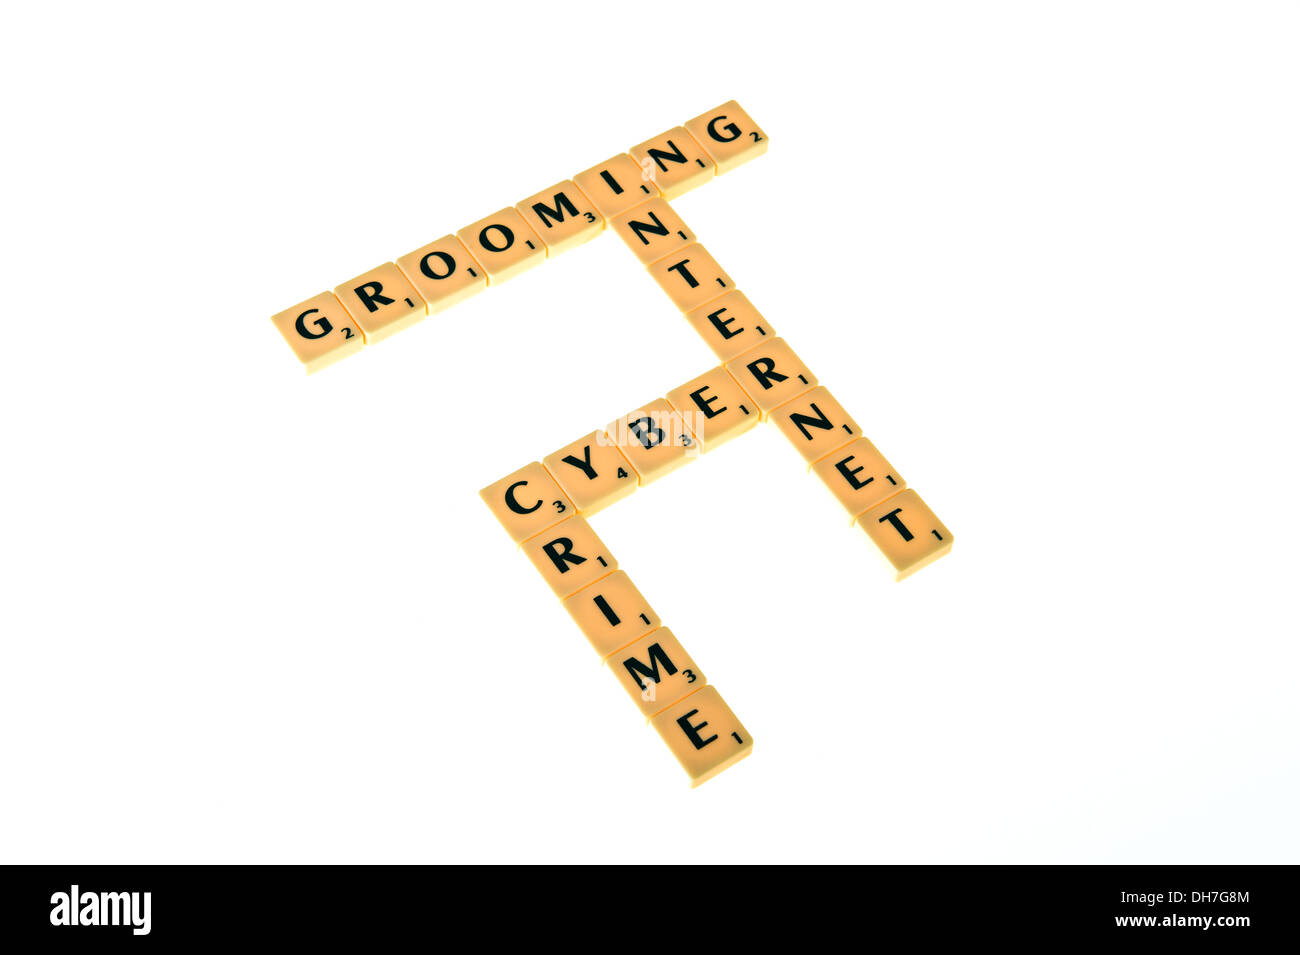 Scrabble tiles spelling out - grooming, internet, cyberand crime. - Stock Image